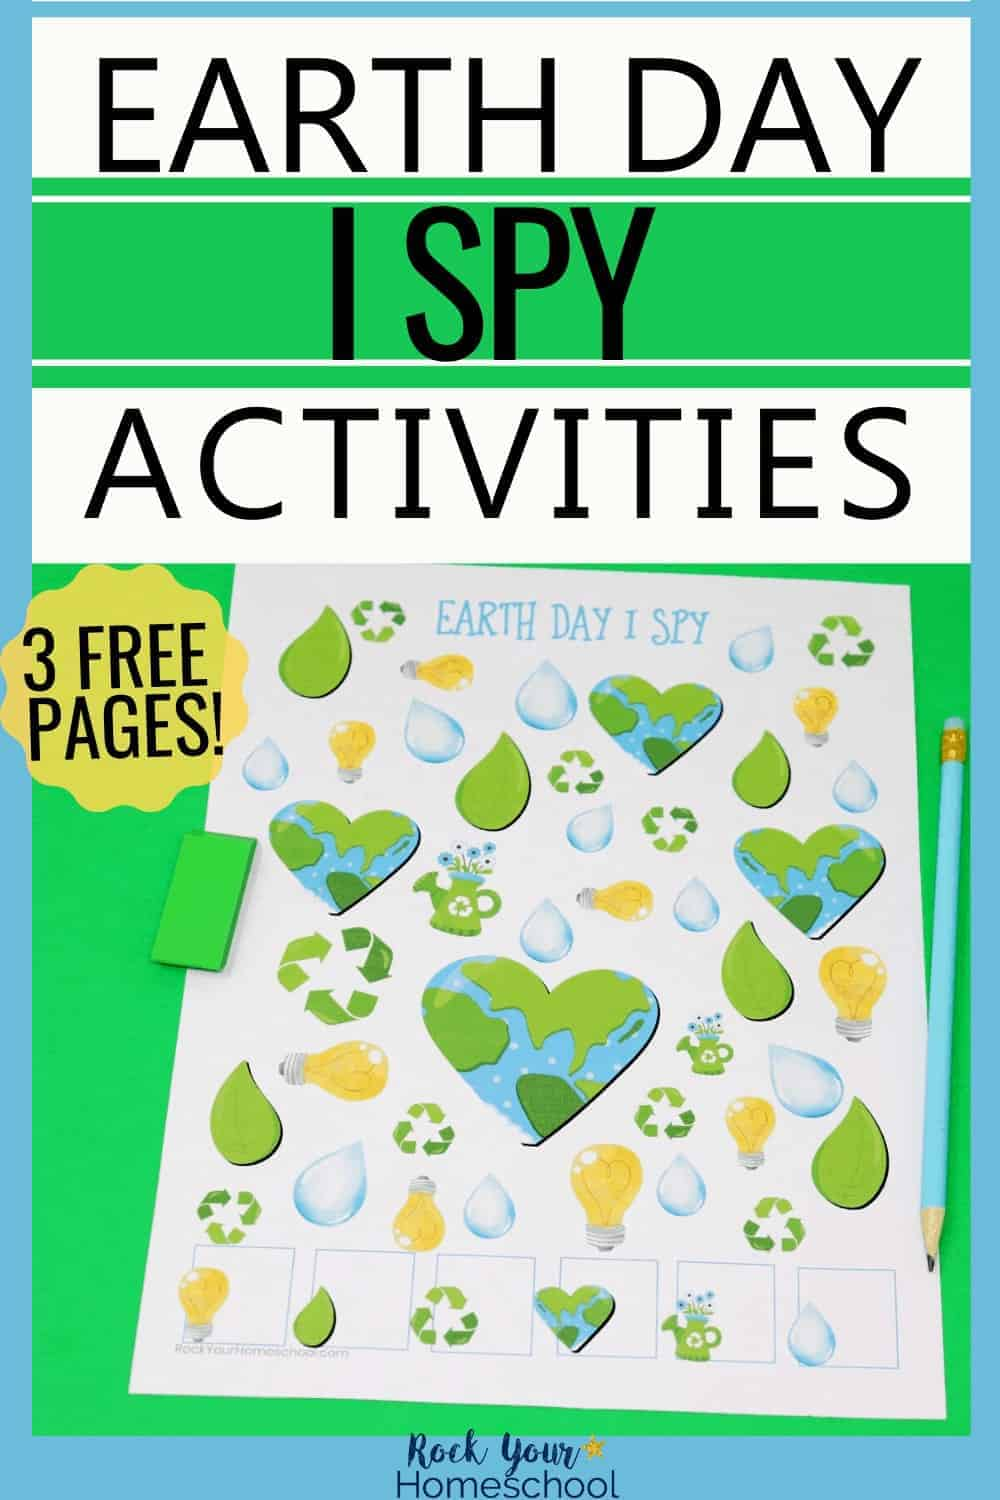 Easy Earth Day Activities For Kids With 3 Free I Spy Printables Rock Your Homeschool